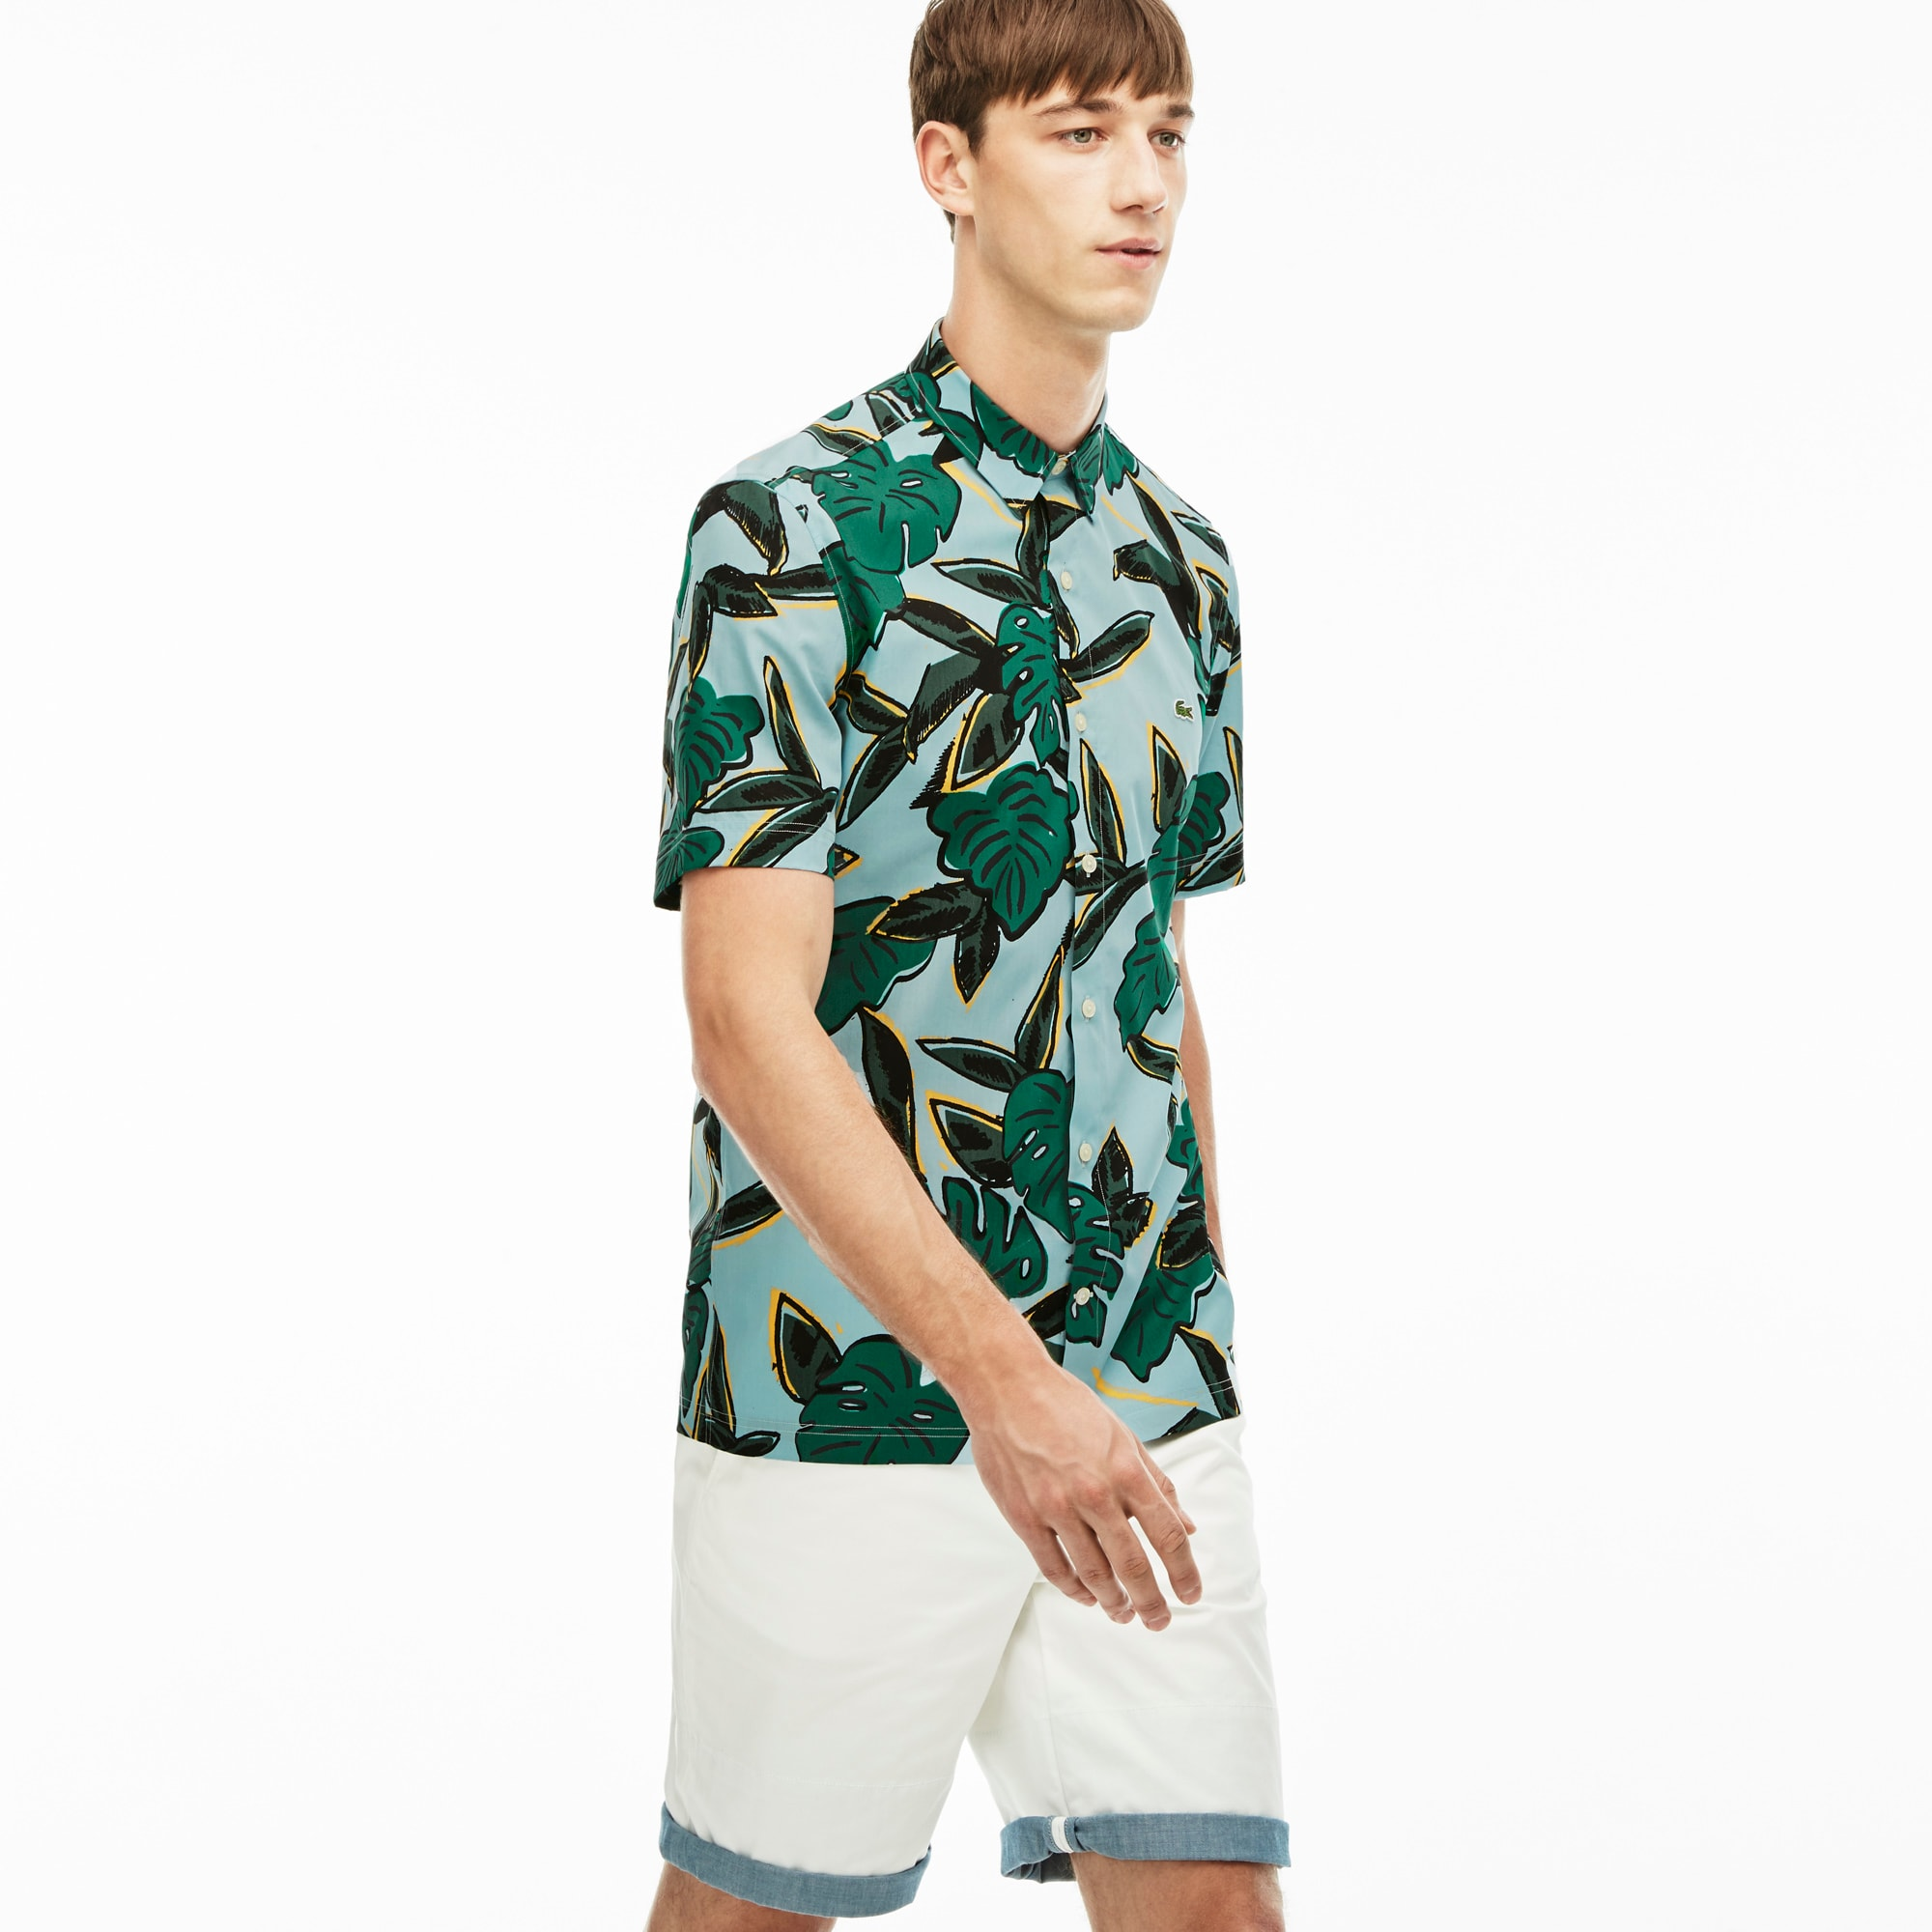 Men's L!VE Slim Fit Tropical Print Shirt